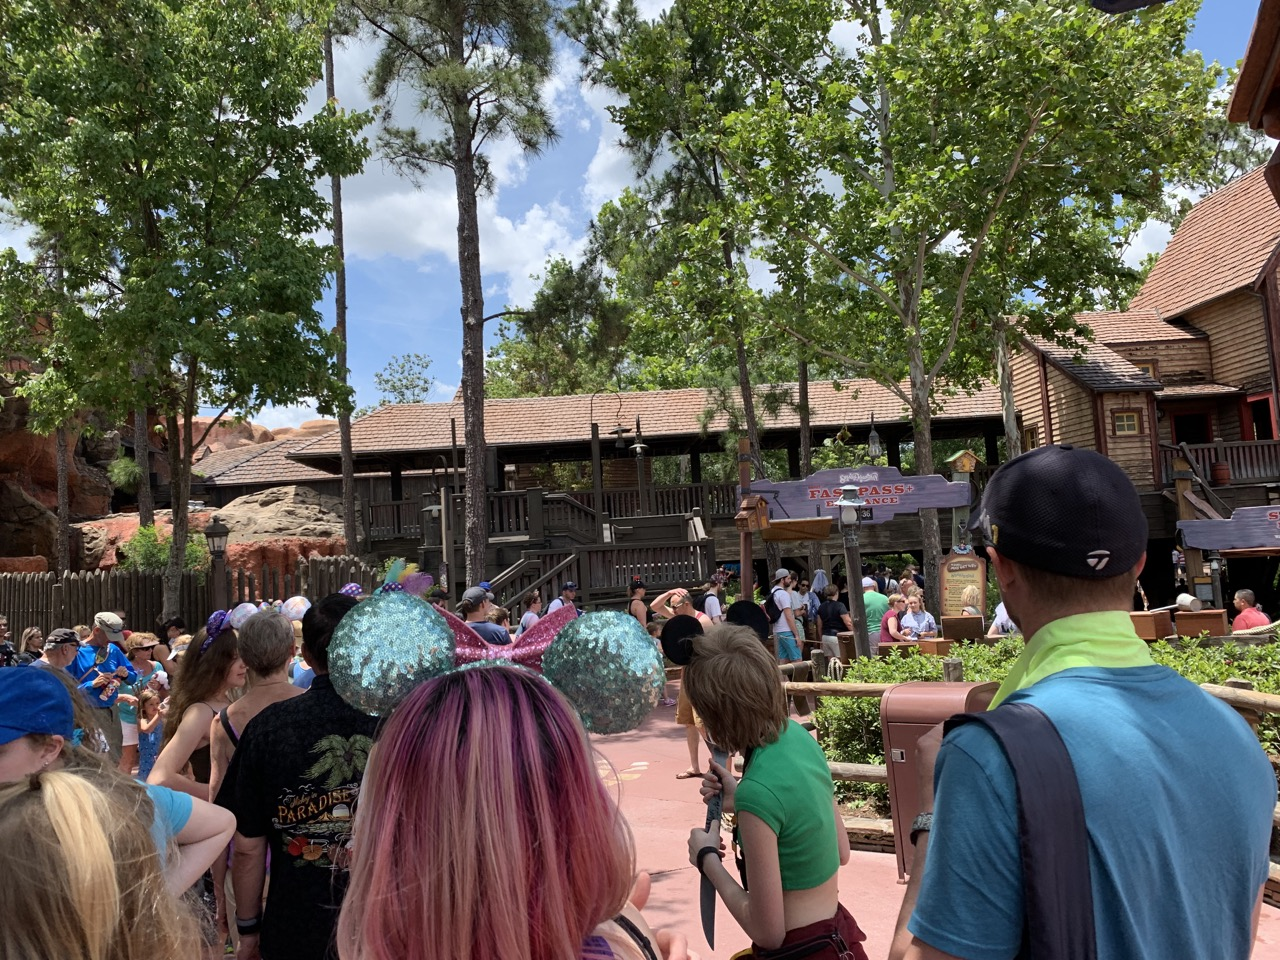 disney world trip report early summer 2019 day five 48 splash fastpass queue.jpeg